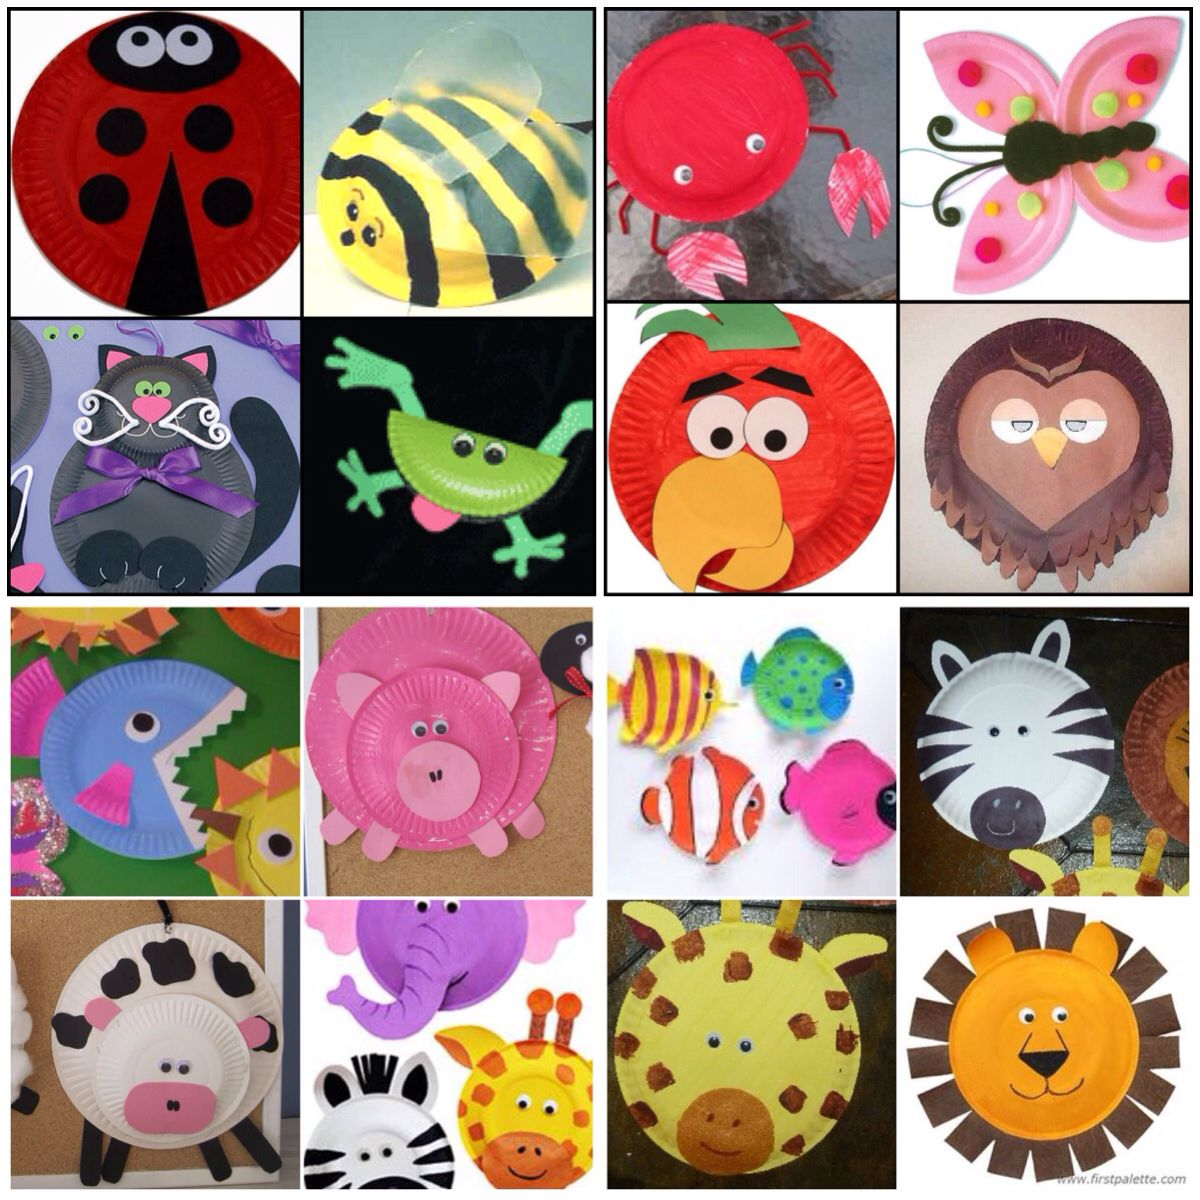 Paper plate animal crafts - Paper Plate Animal Crafts